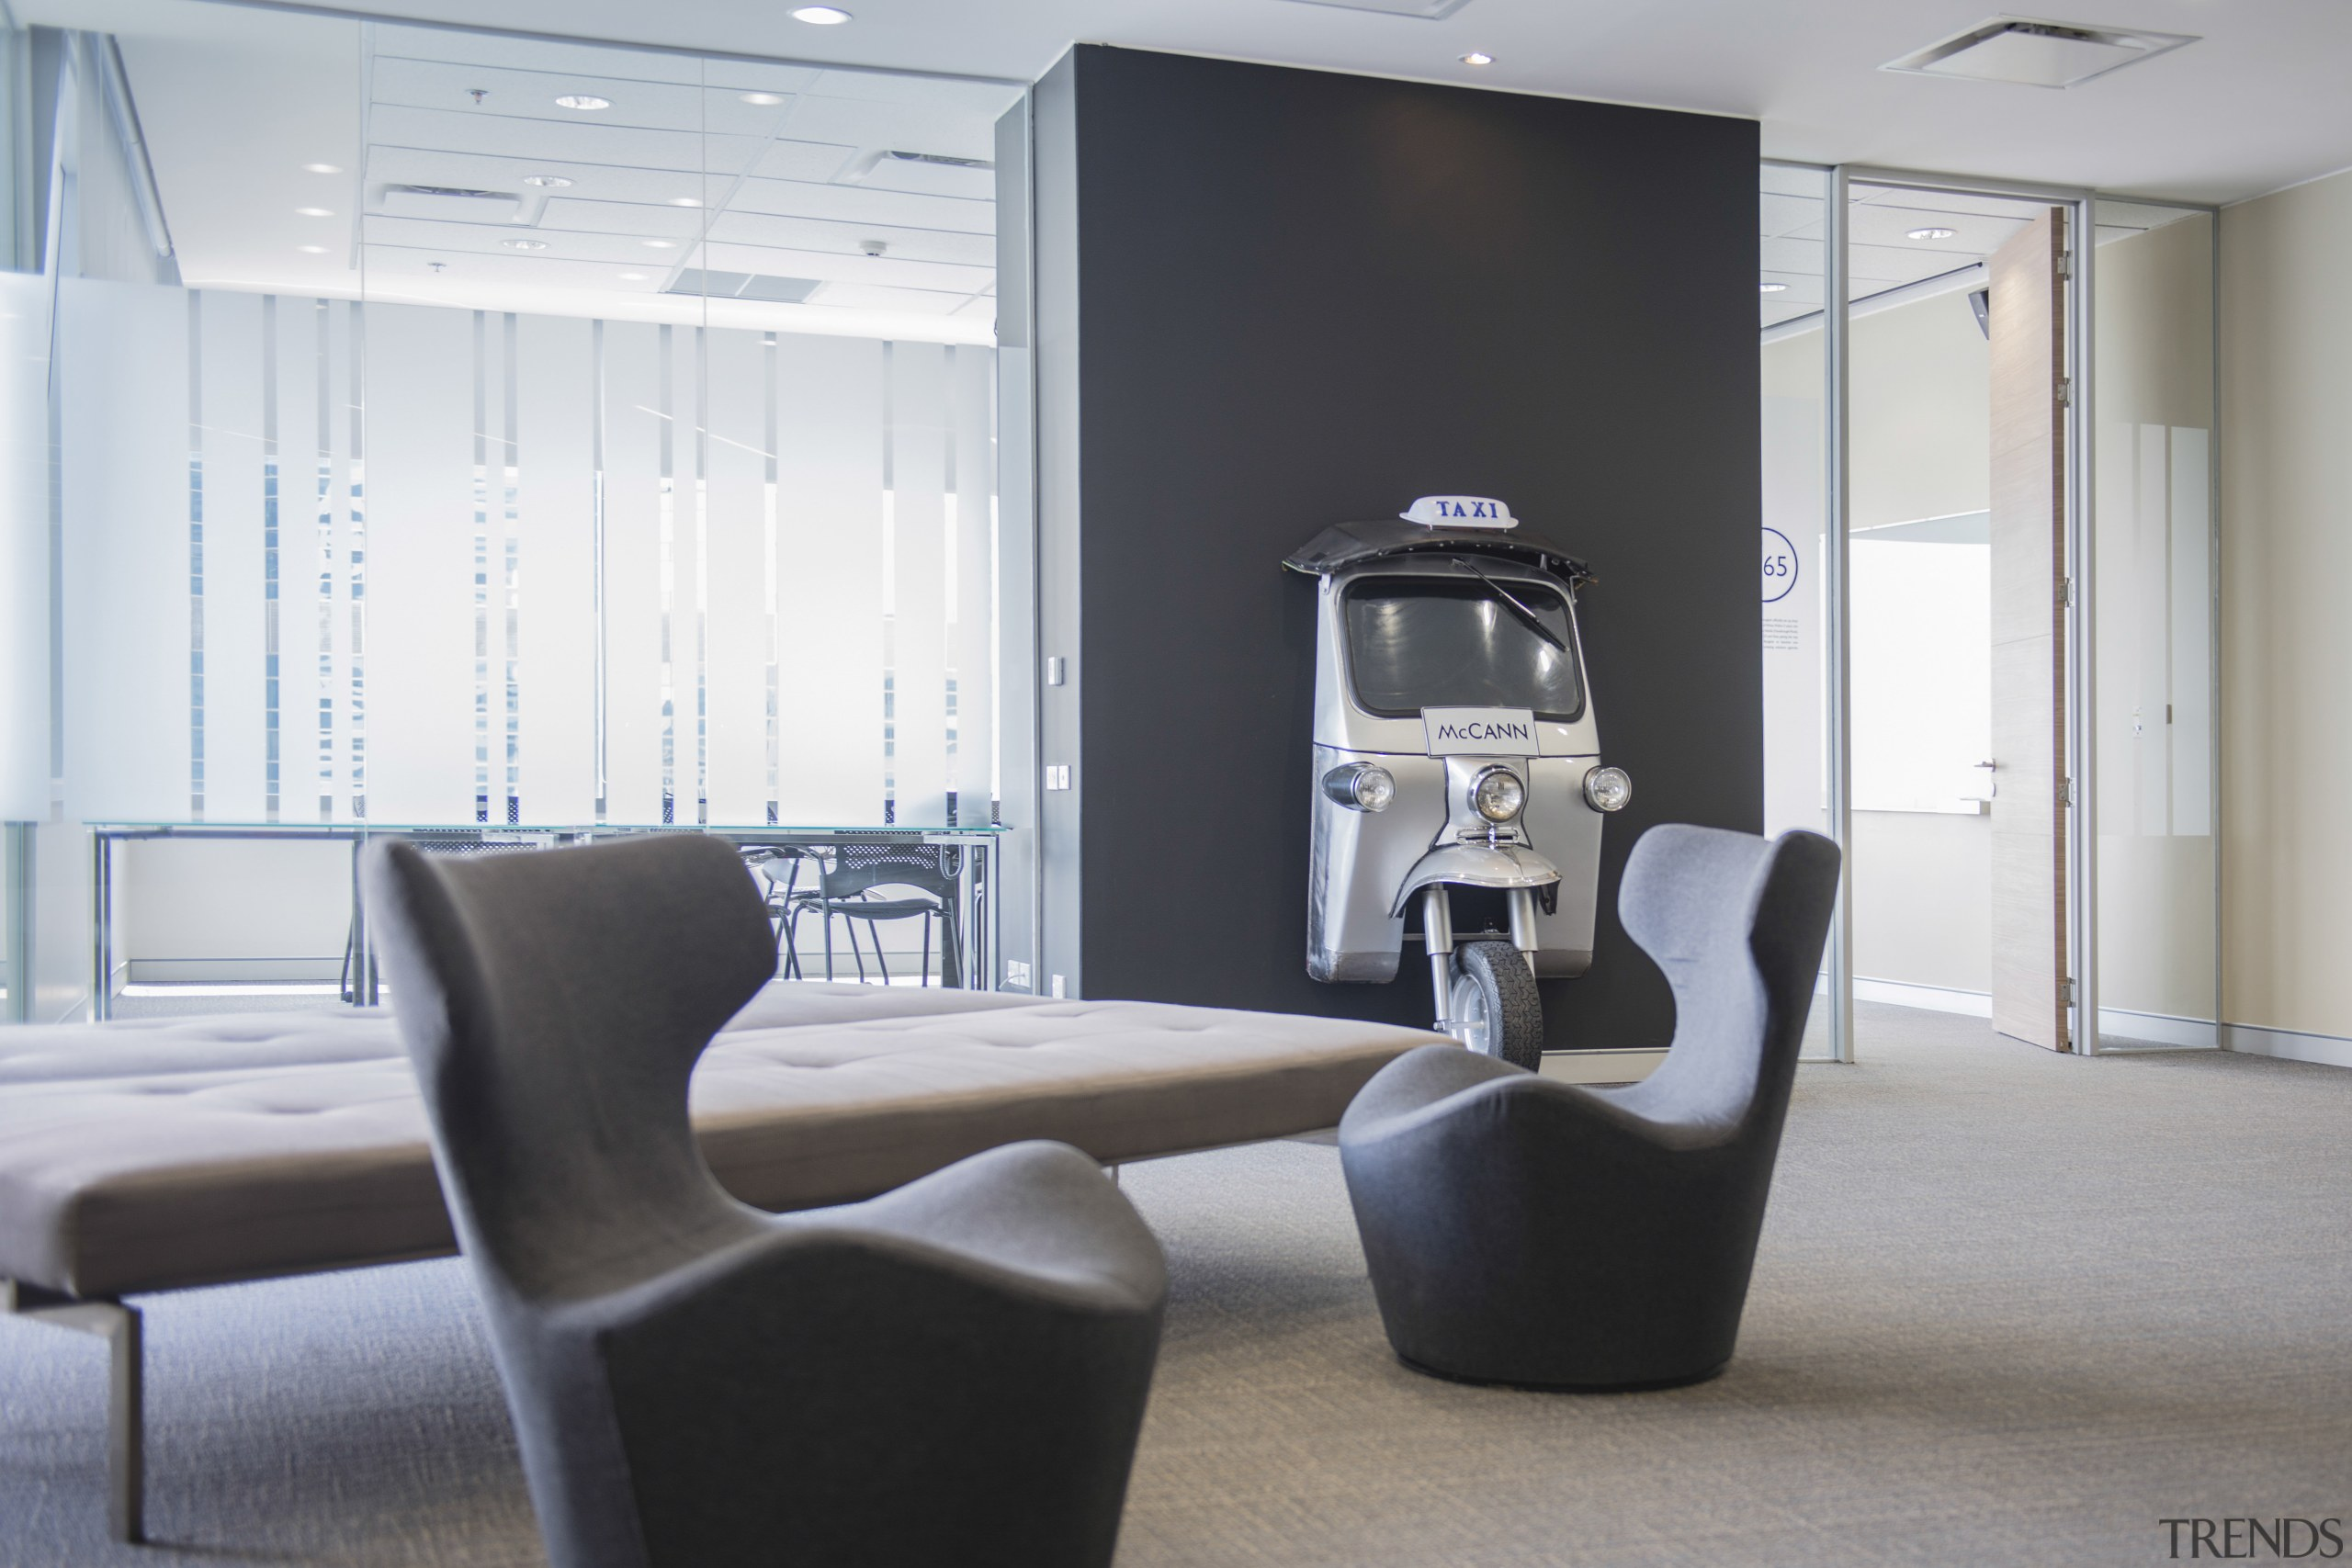 Interior designers DWP reflected Thai culture by incorporating chair, furniture, interior design, office, product design, table, gray, white, black